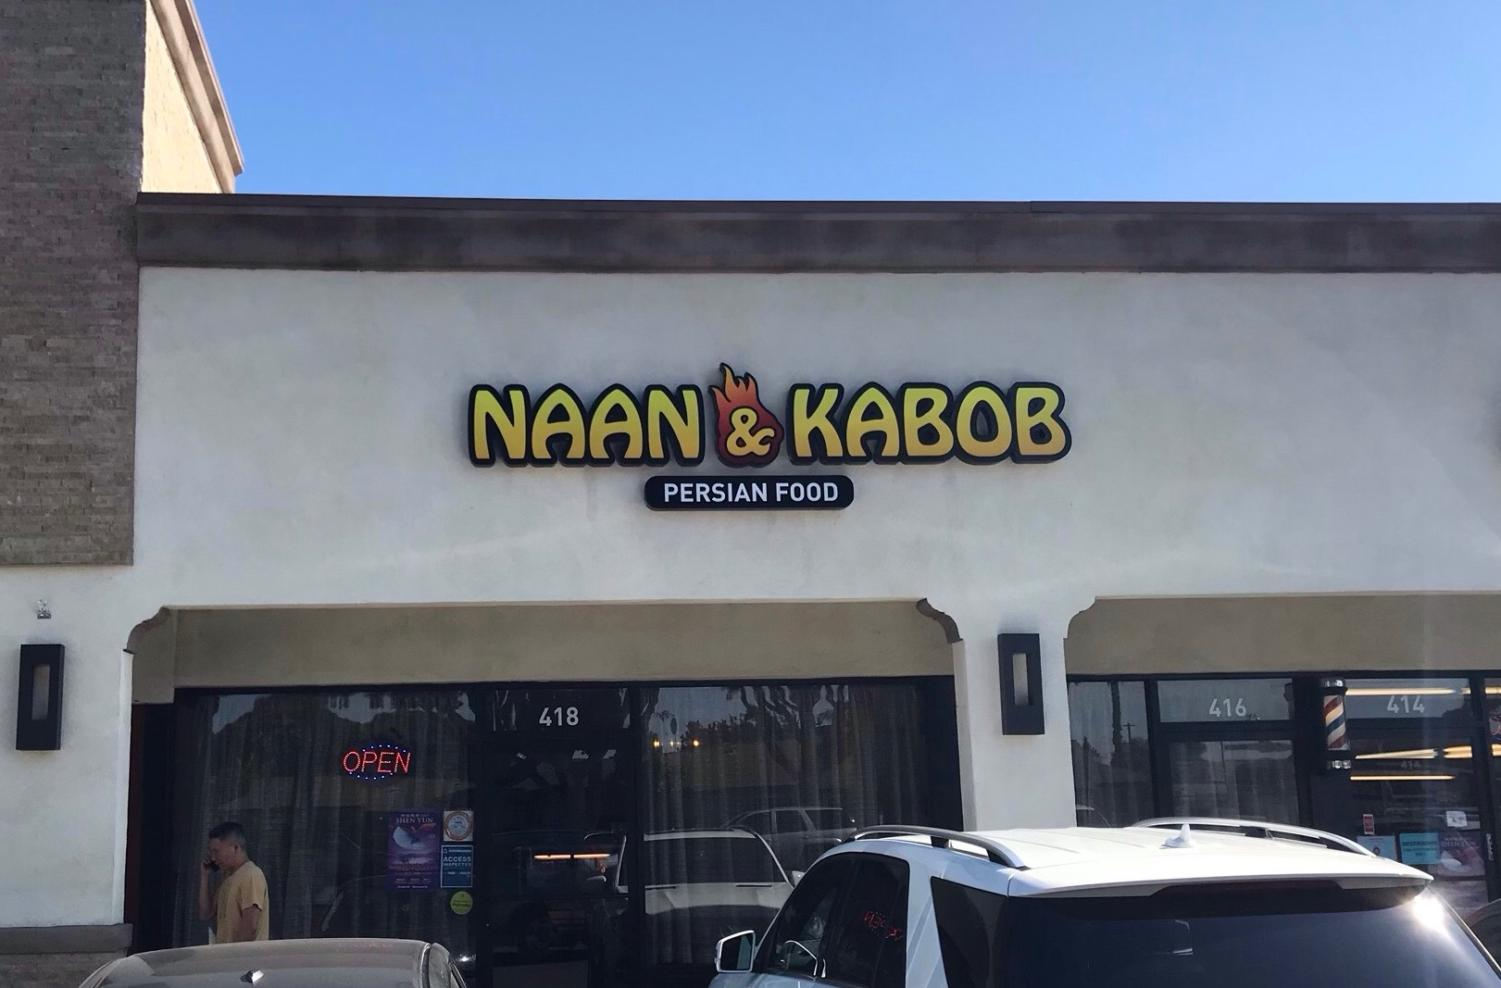 Naan & Kabob offers a variety of Persian cuisine and is located in Tustin.